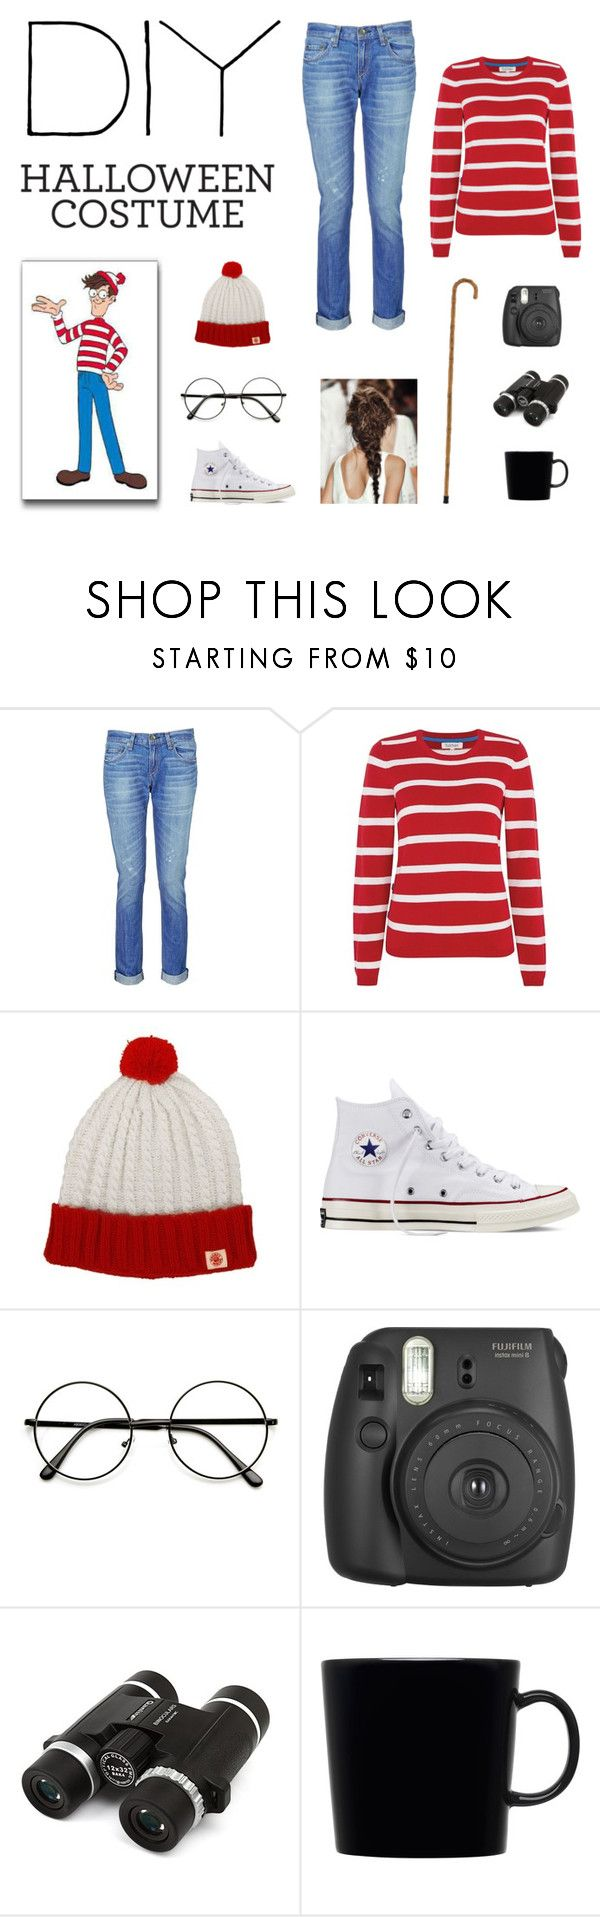 """Where's Waldo DIY Halloween Costume Contest Entry"" by lovesixteen ❤ liked on Polyvore featuring rag & bone, Tulchan, Converse and iittala"